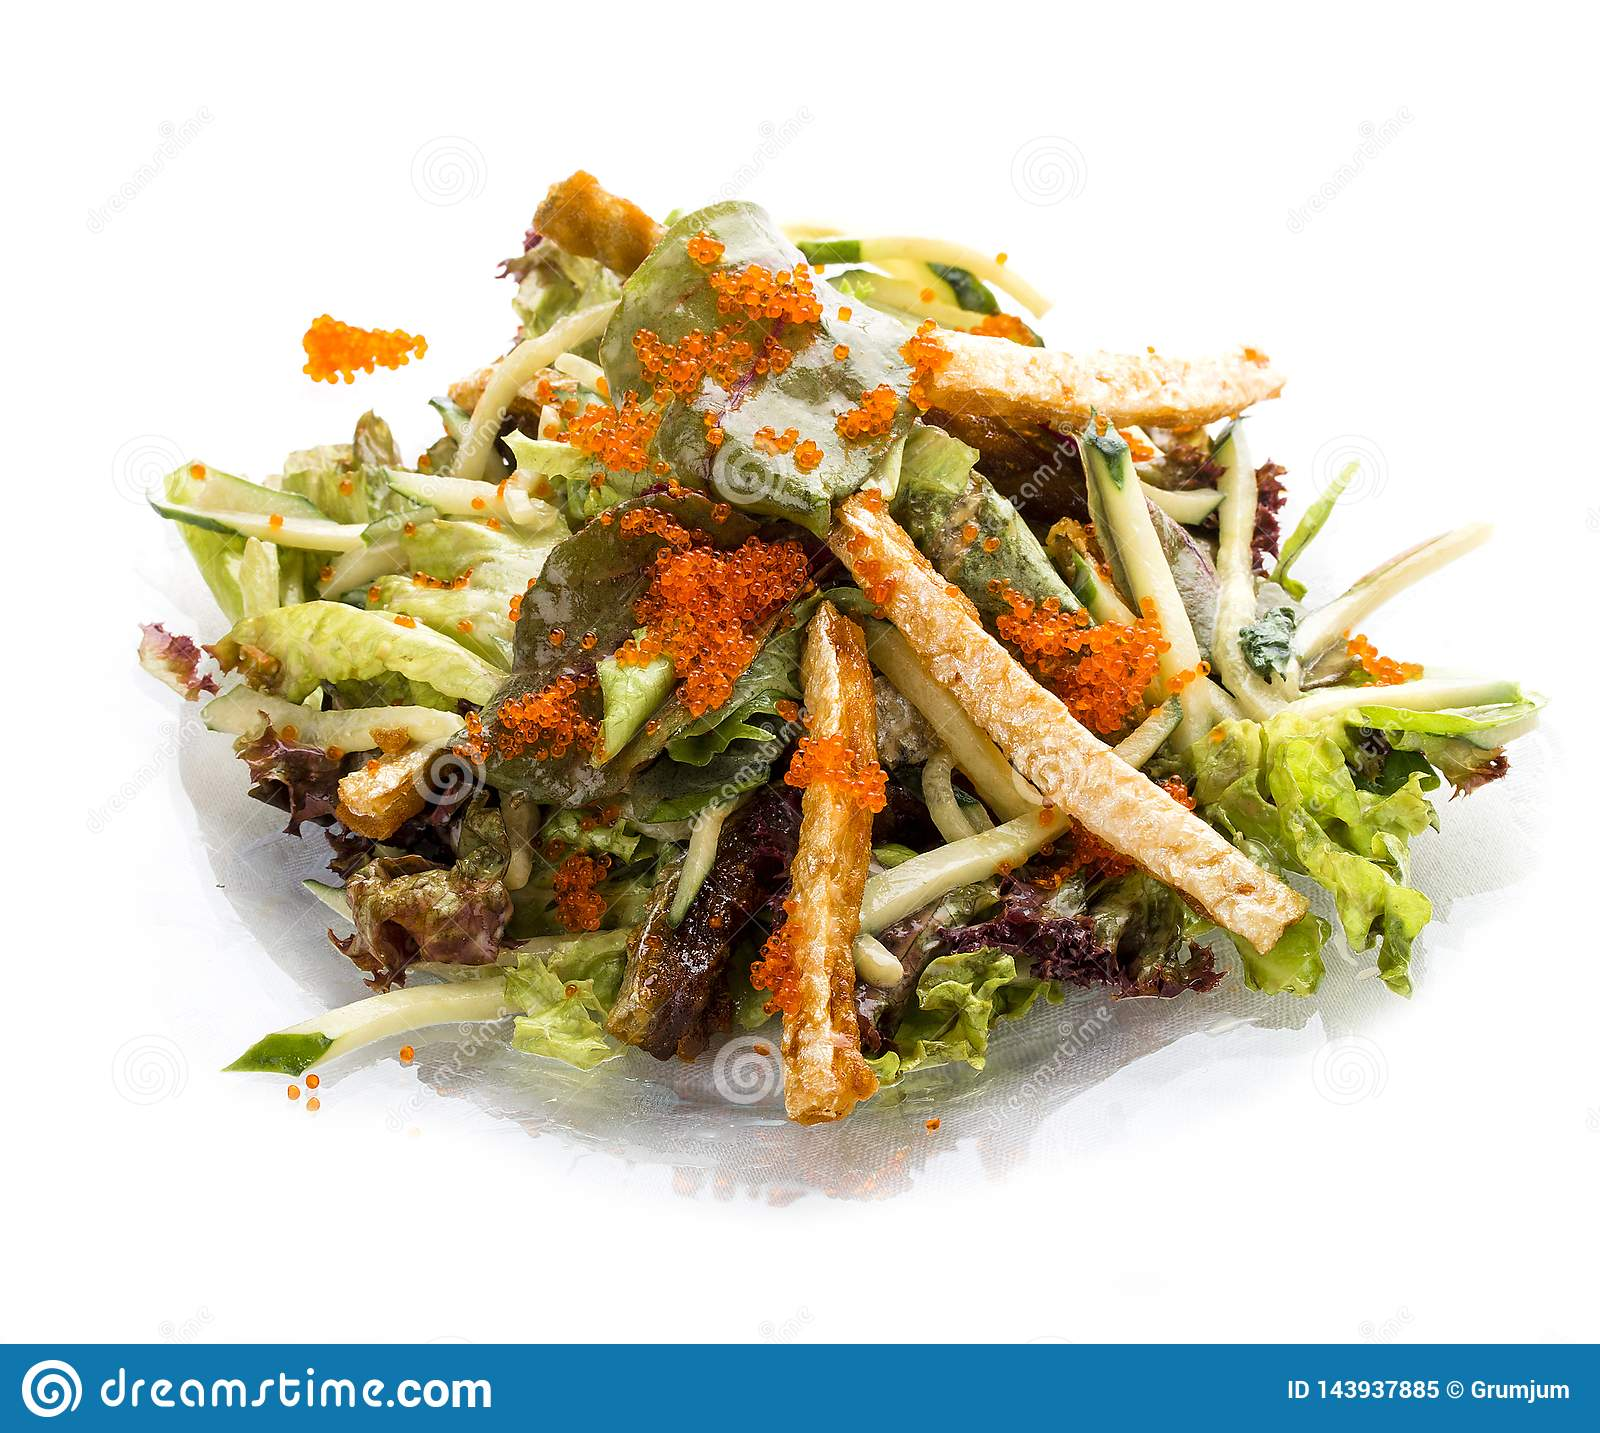 Salad With Belly Of Salmon And Flying Fish Roe Asian Lunch Stock Image Image Of Seafood Rice 143937885